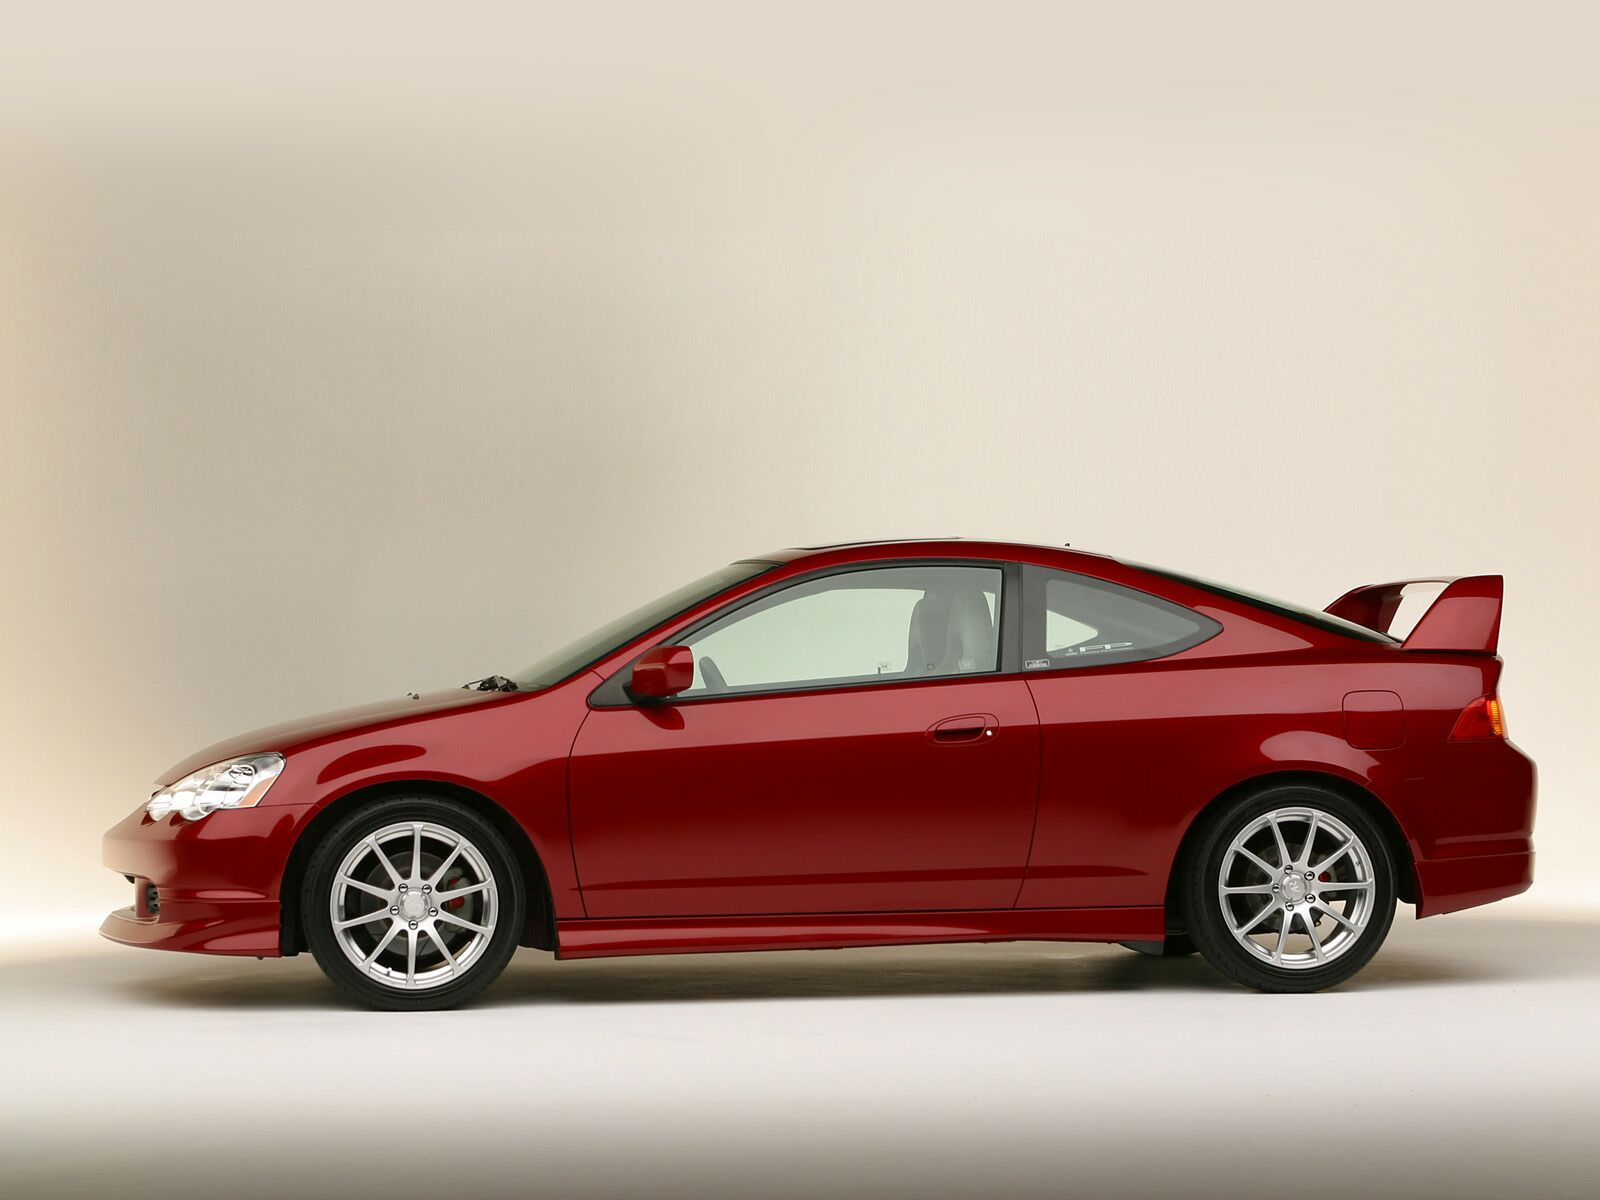 Acura Rsx For Sale At Used Car Dealerships